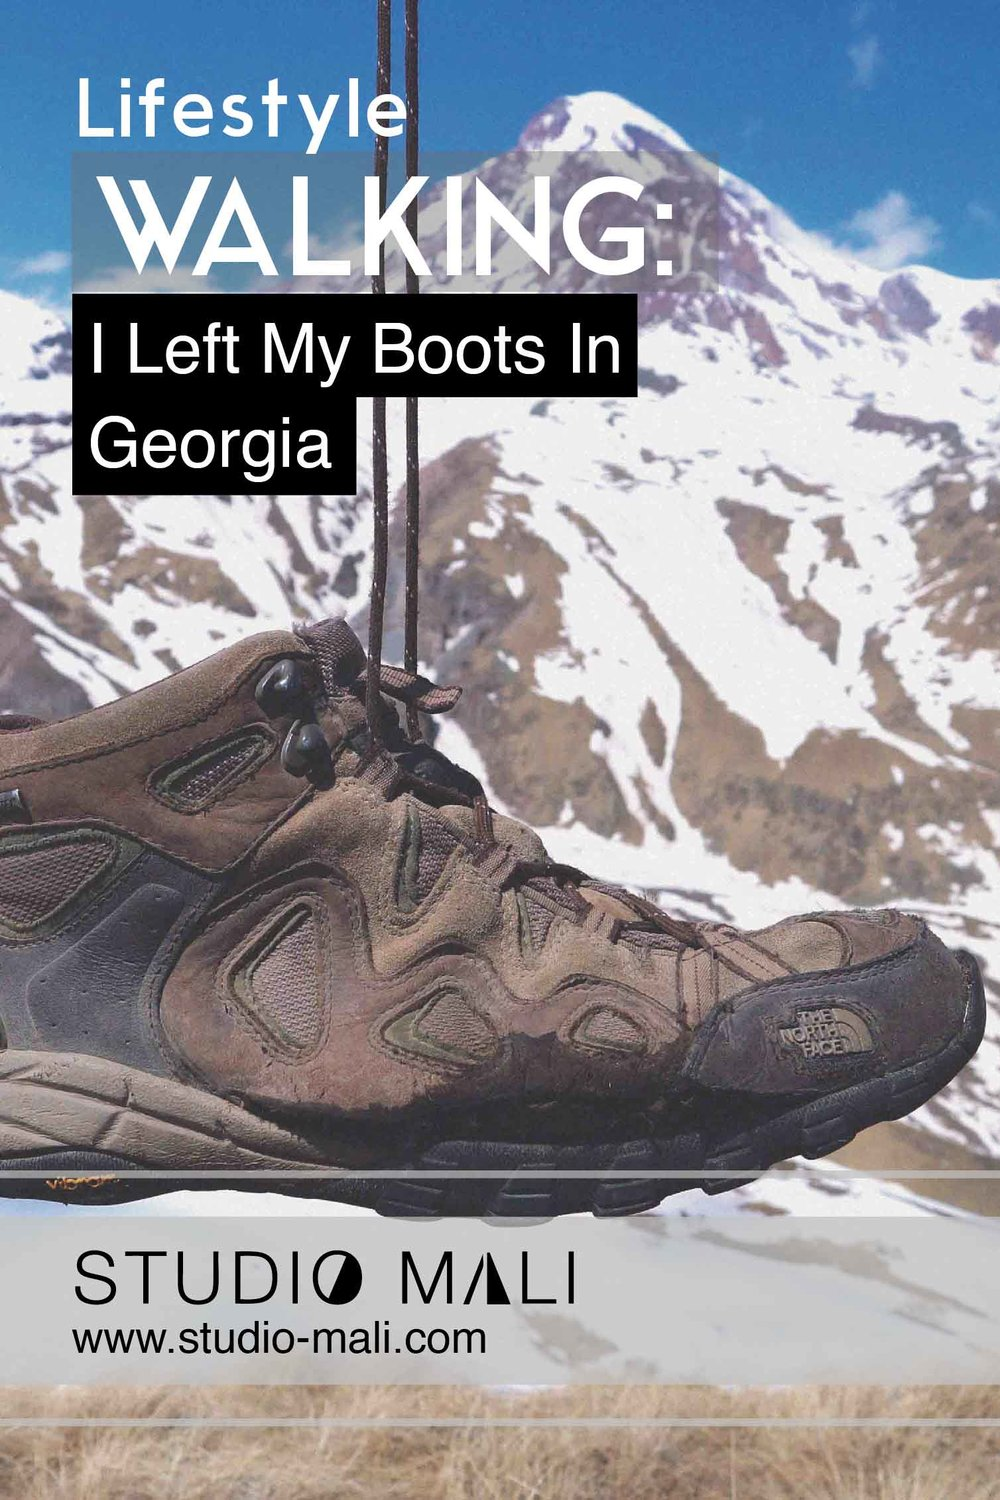 Lifestyle - I left My Boots In Georgia, By Studio Mali-21.jpg